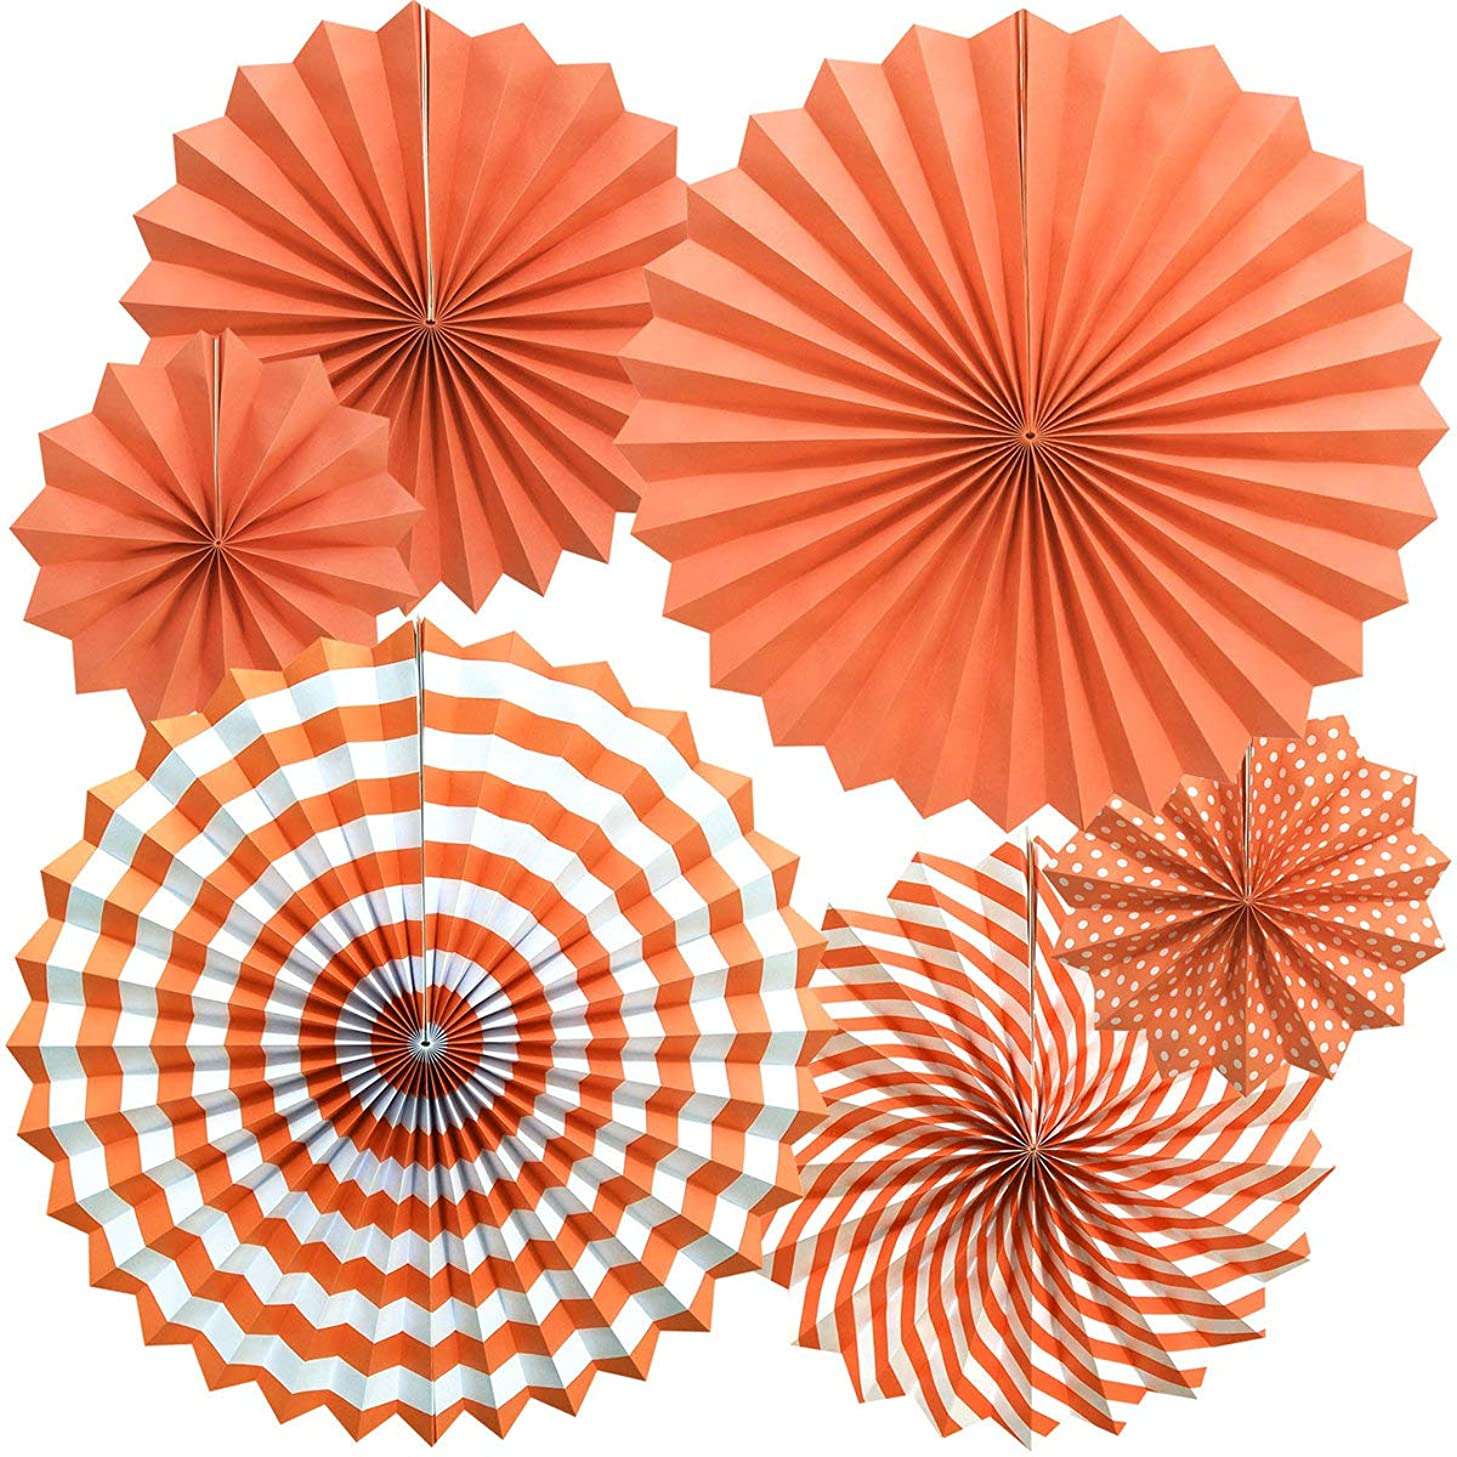 Zolee Hanging Paper Fans Decorations Kit for Wall - Set of 6 Circle Rosettes Tissue Paper Fans Bulk for Party Favors, Wedding, Birthday, Festival, Christmas, Events, Home Decor (Orange)